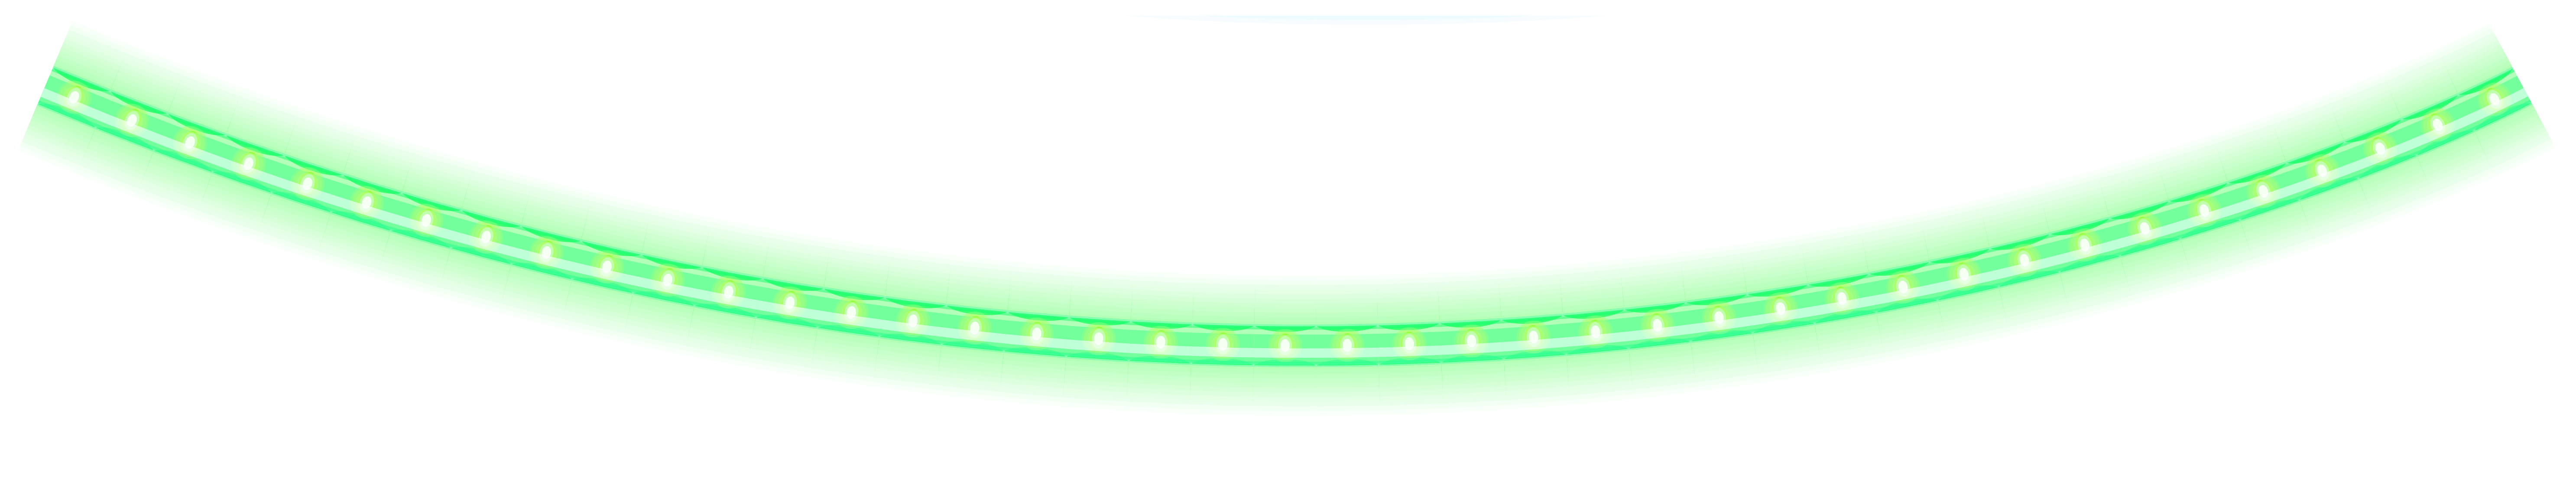 Worm clipart glow worm. Free on dumielauxepices net